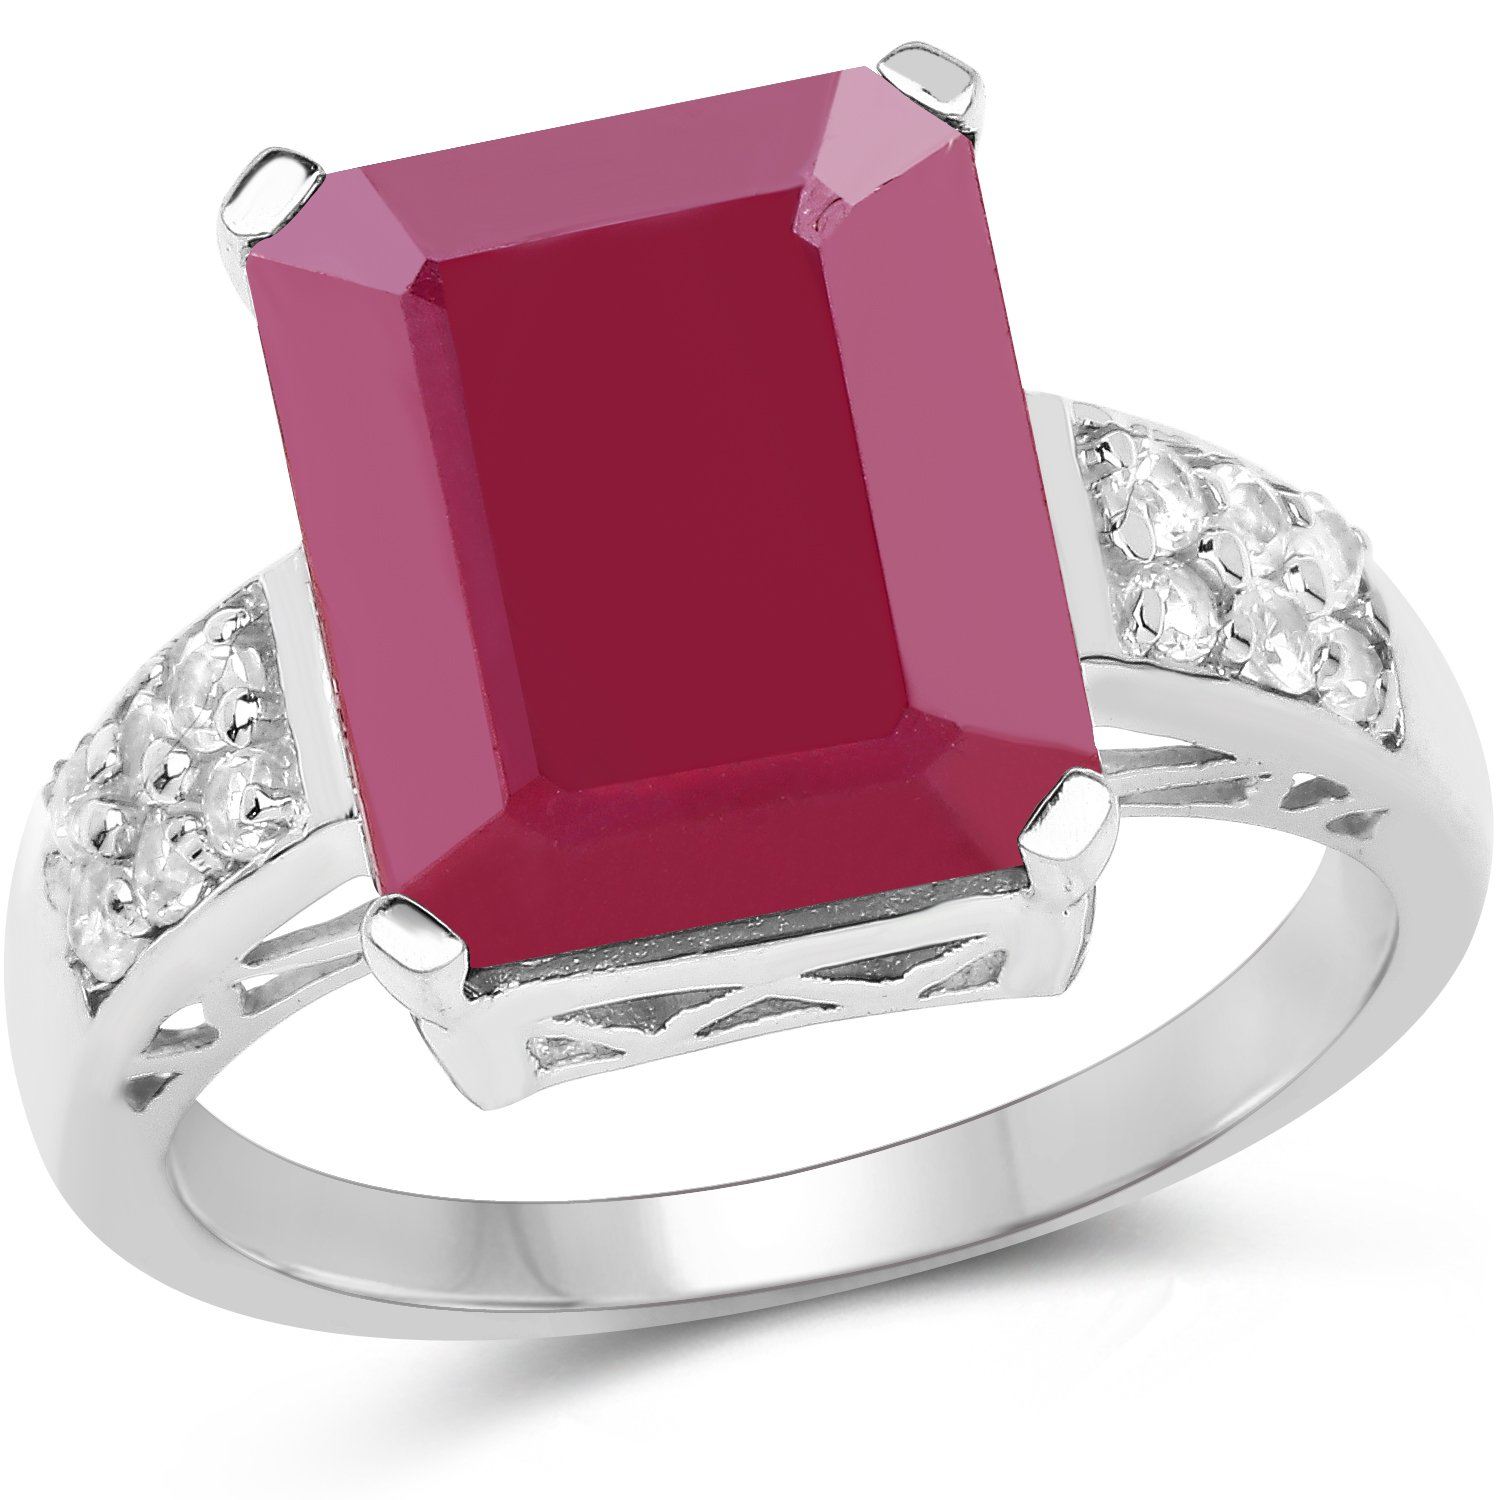 925 Sterling Silver Love Proposal Ring 7.26 Ct Glass Filled Ruby & White Topaz